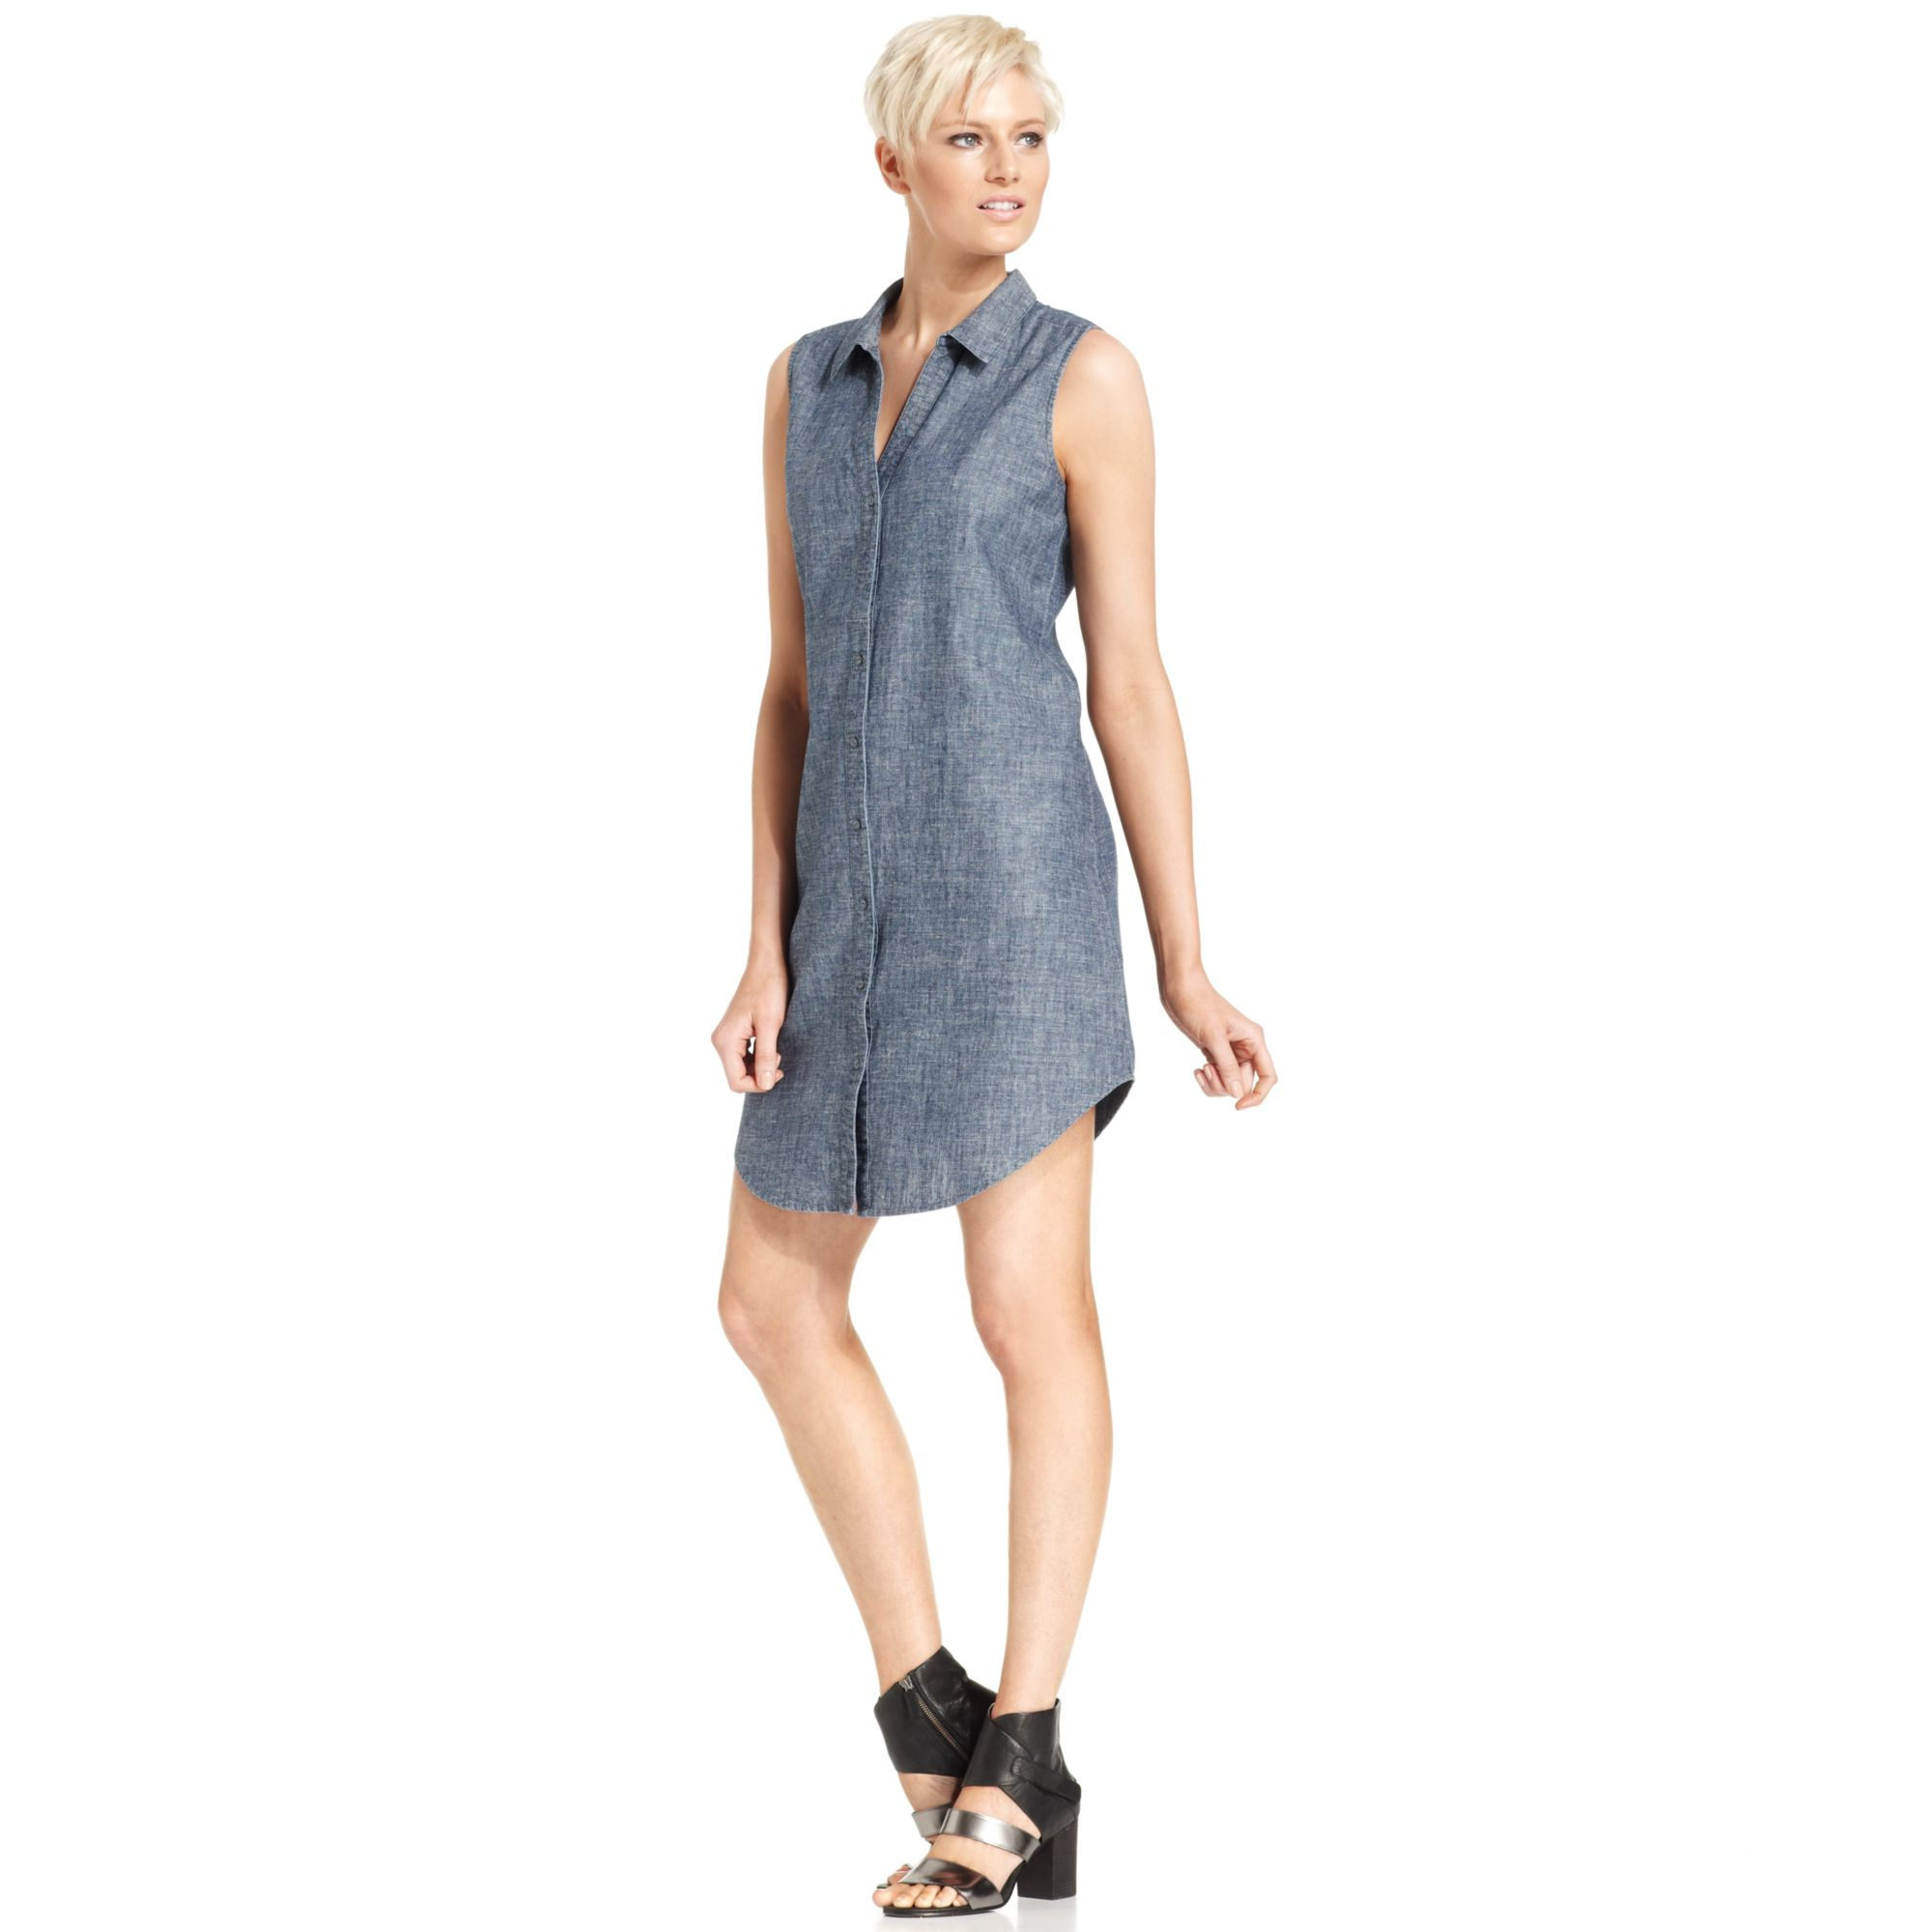 Eileen fisher sleeveless button front chambray dress in for Chambray dress